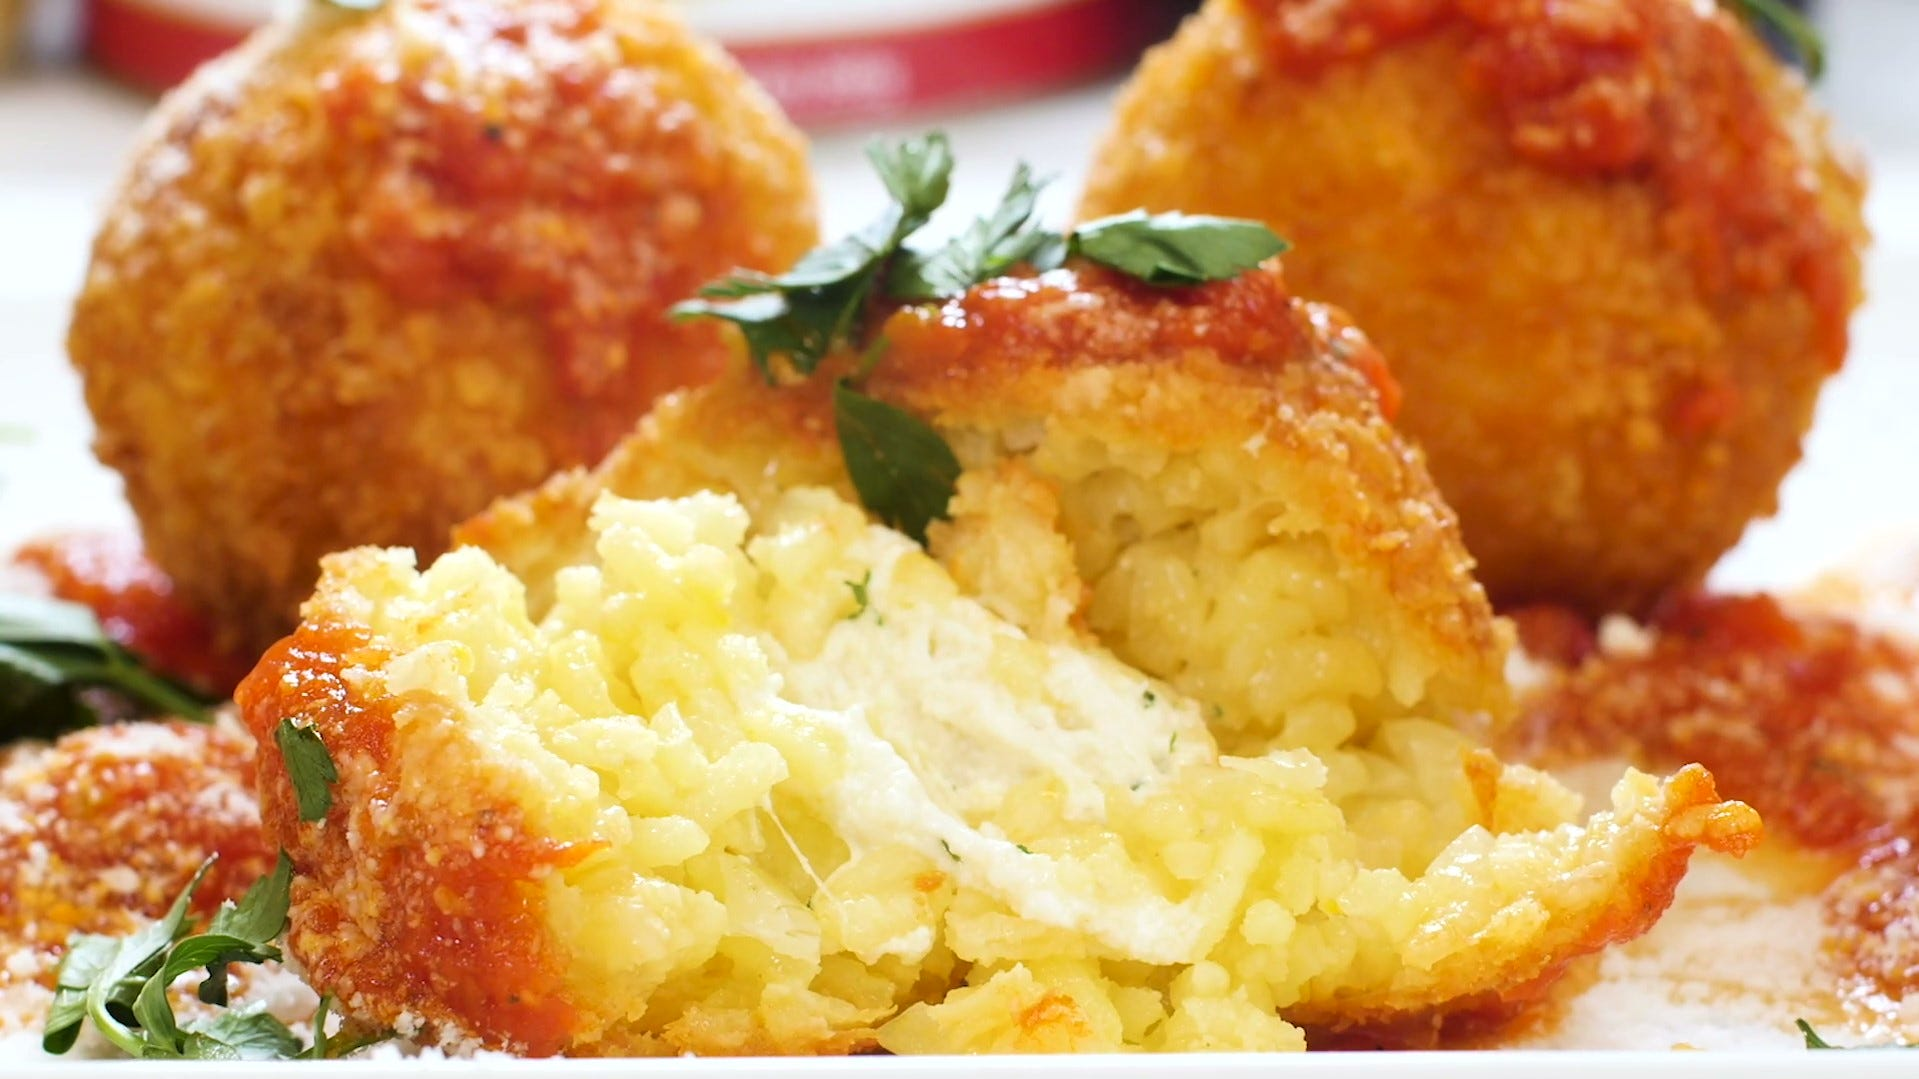 This rice balls recipe is guaranteed to impress guests at your next dinner party.